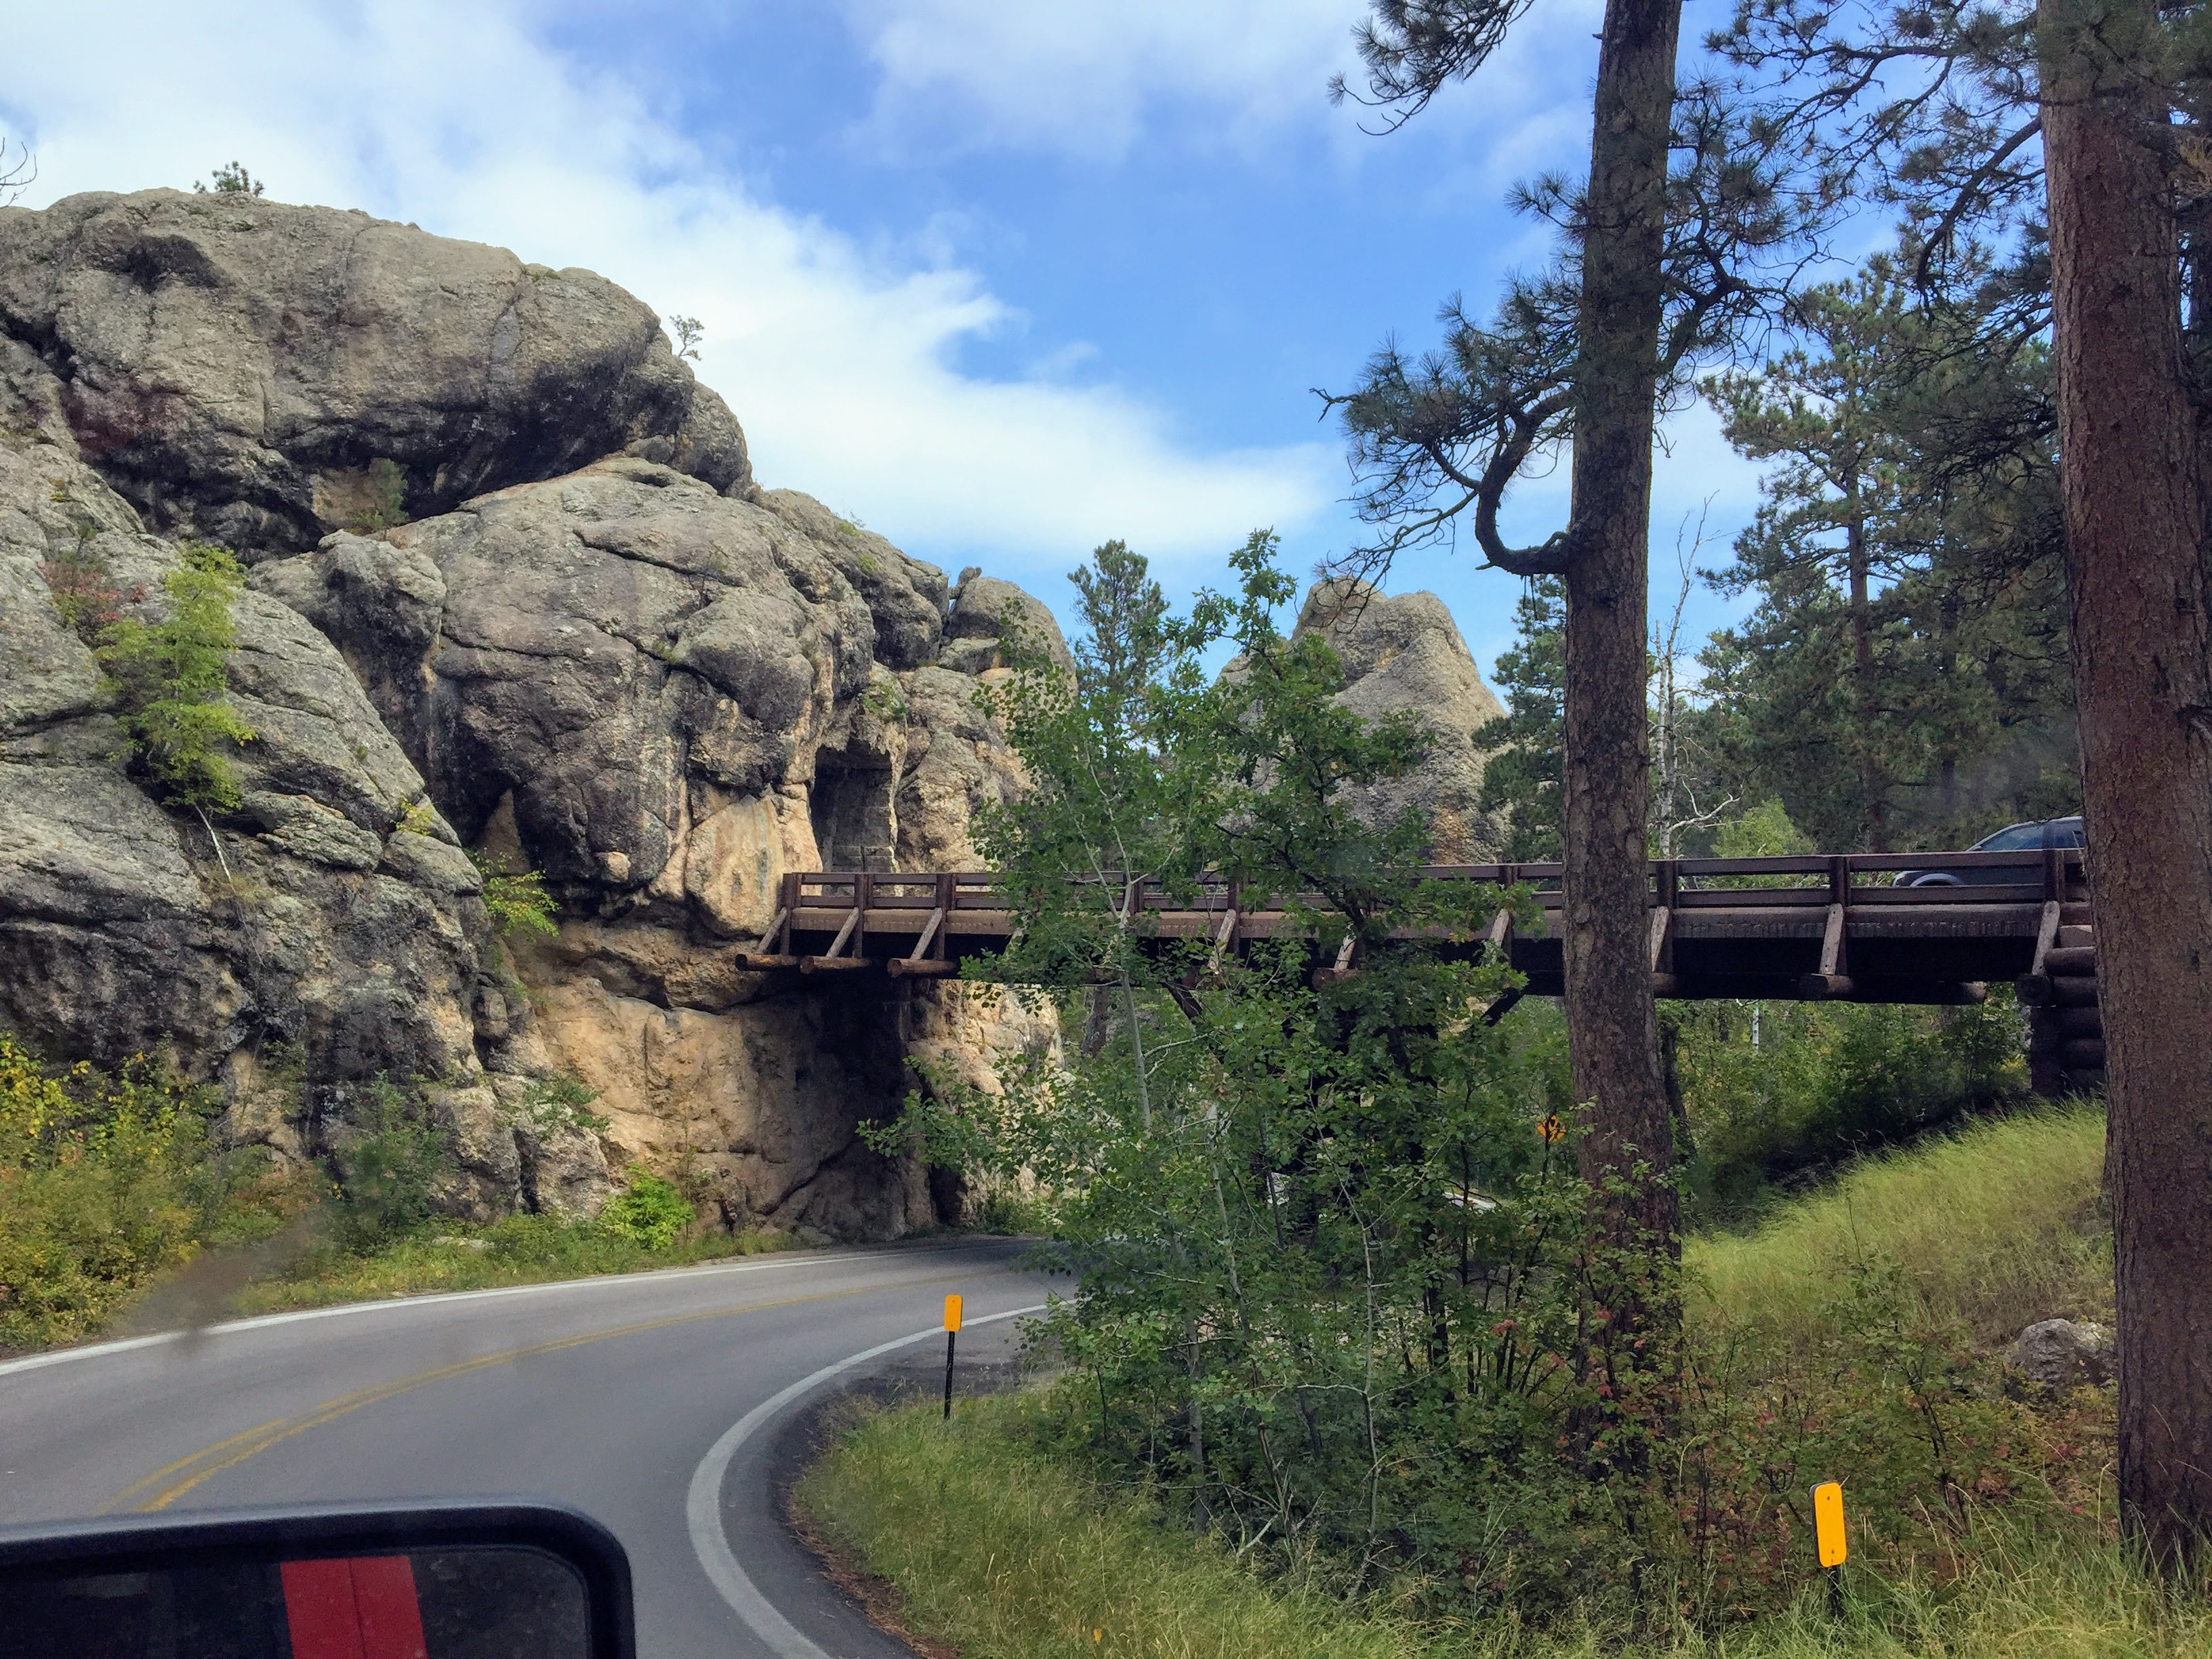 2017-09-17 Black Hills 11 Pigtail Tunnel 01